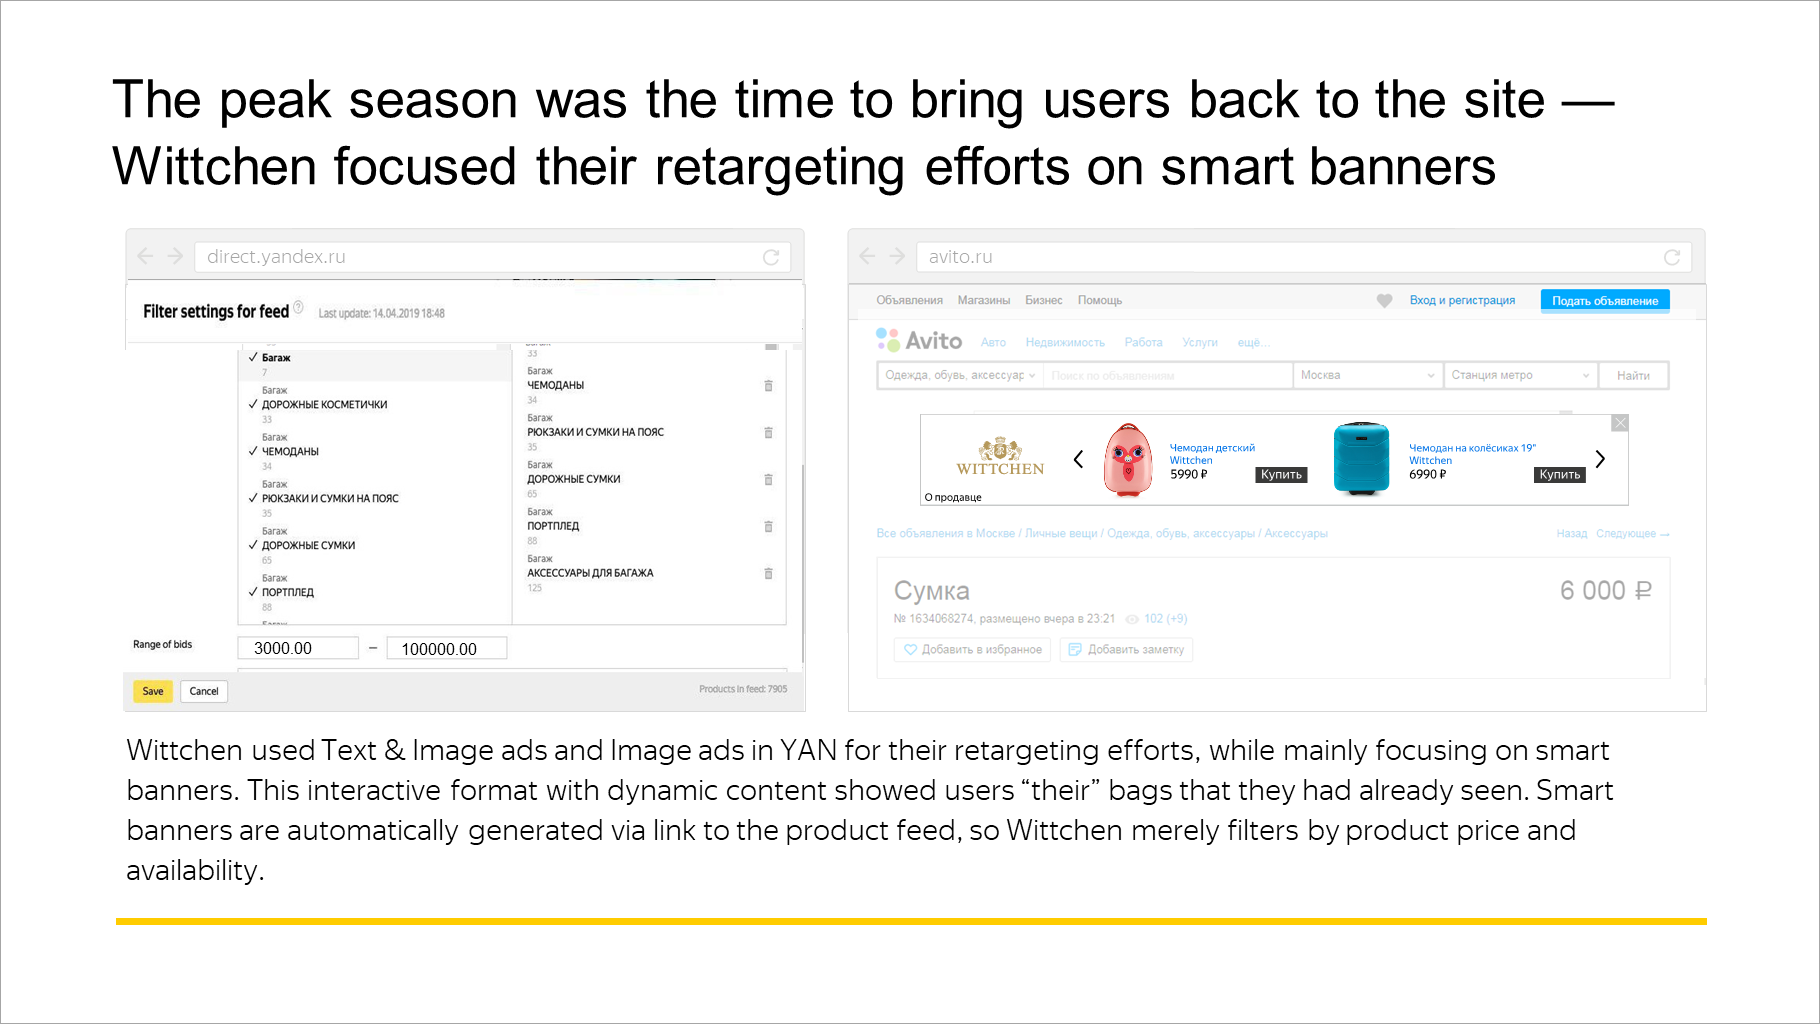 The peak season was the time to bring users back to the site — Wittchen focused their retargeting efforts on smart banners